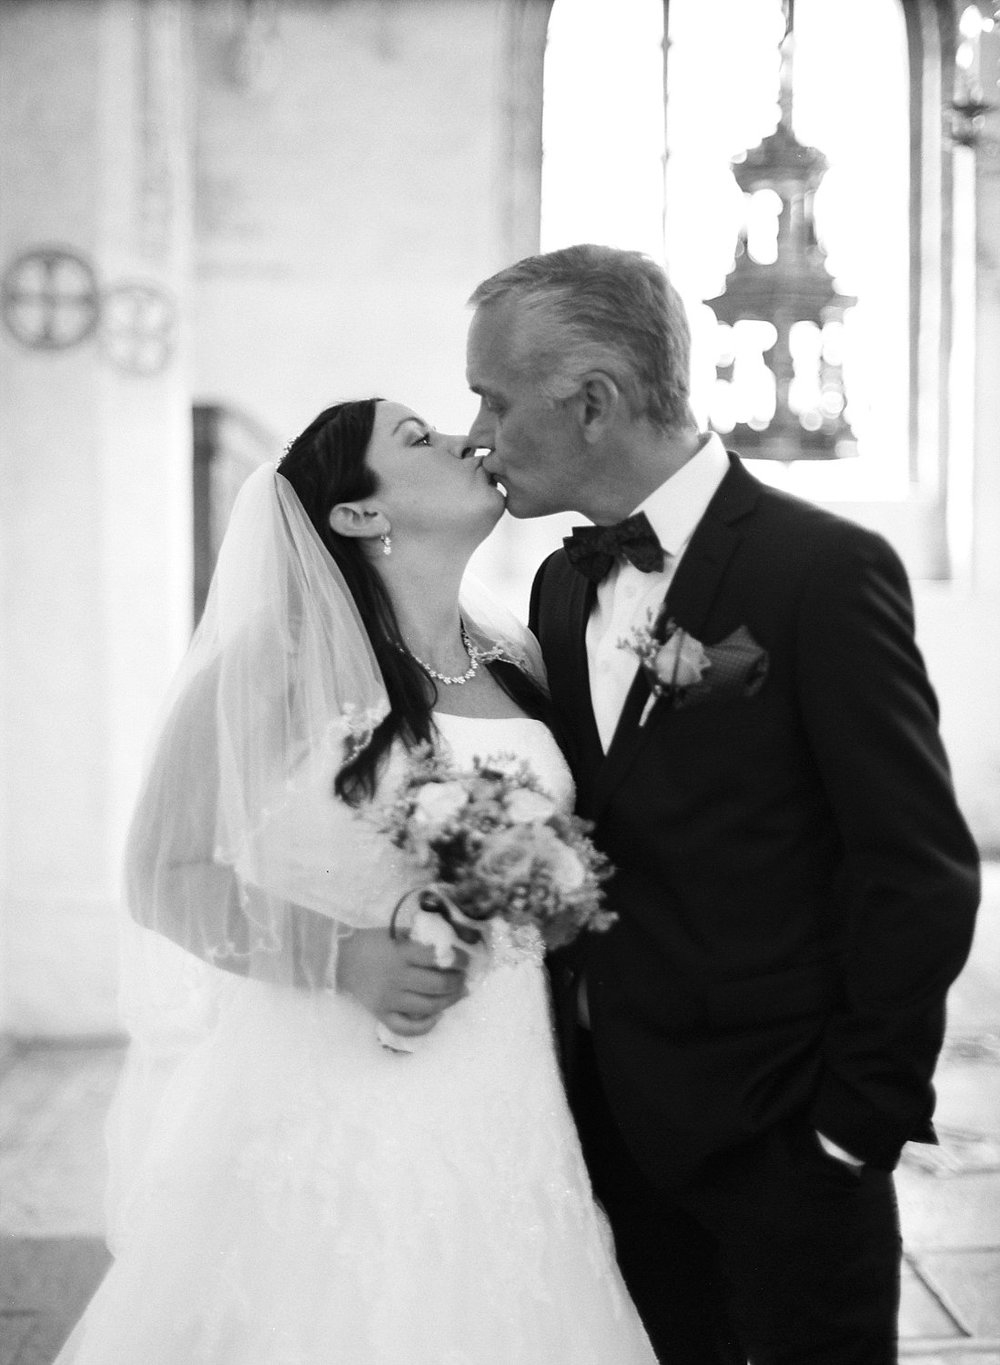 JuicebeatsPhotography_Sankt Petri Church_Malmö_Sweden_Wedding_0085.jpg